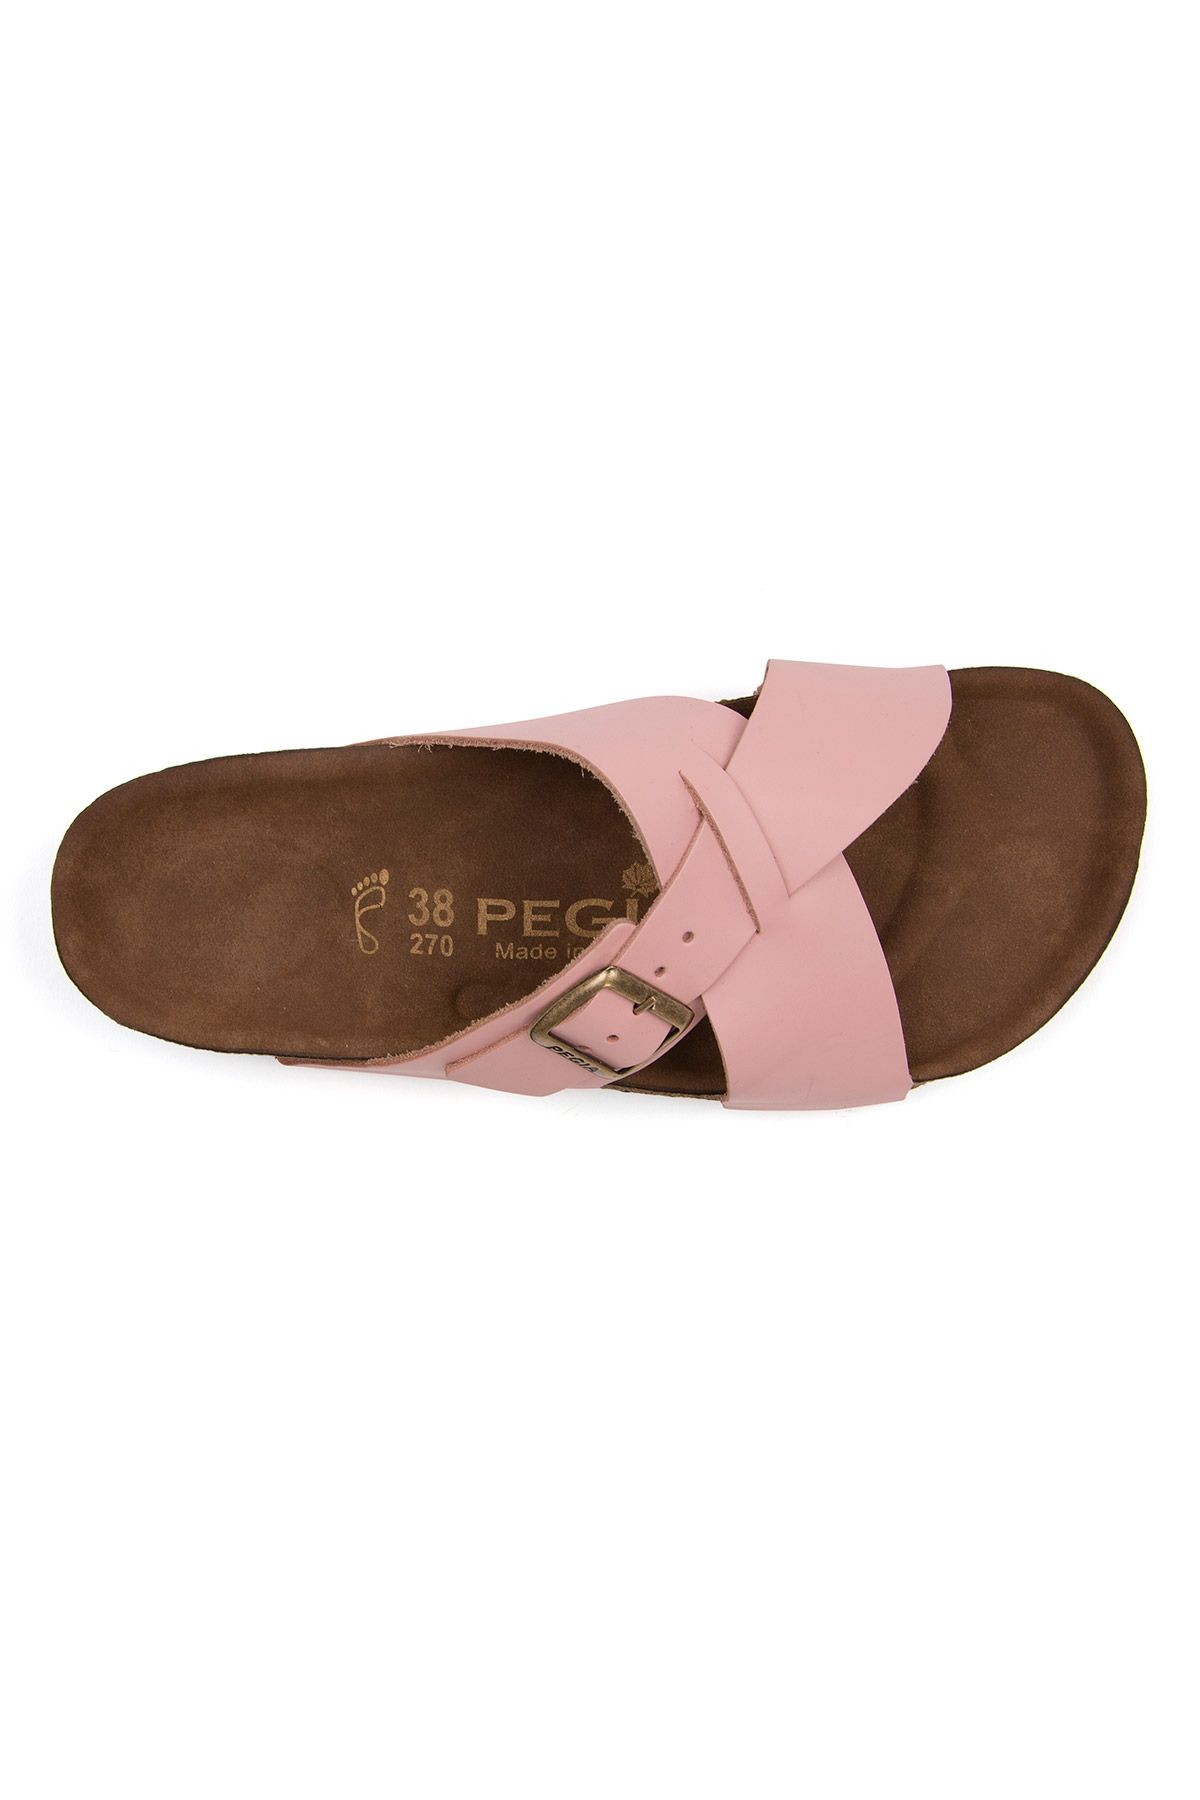 Pegia Women's Leather Strap Slippers 215524 Pink